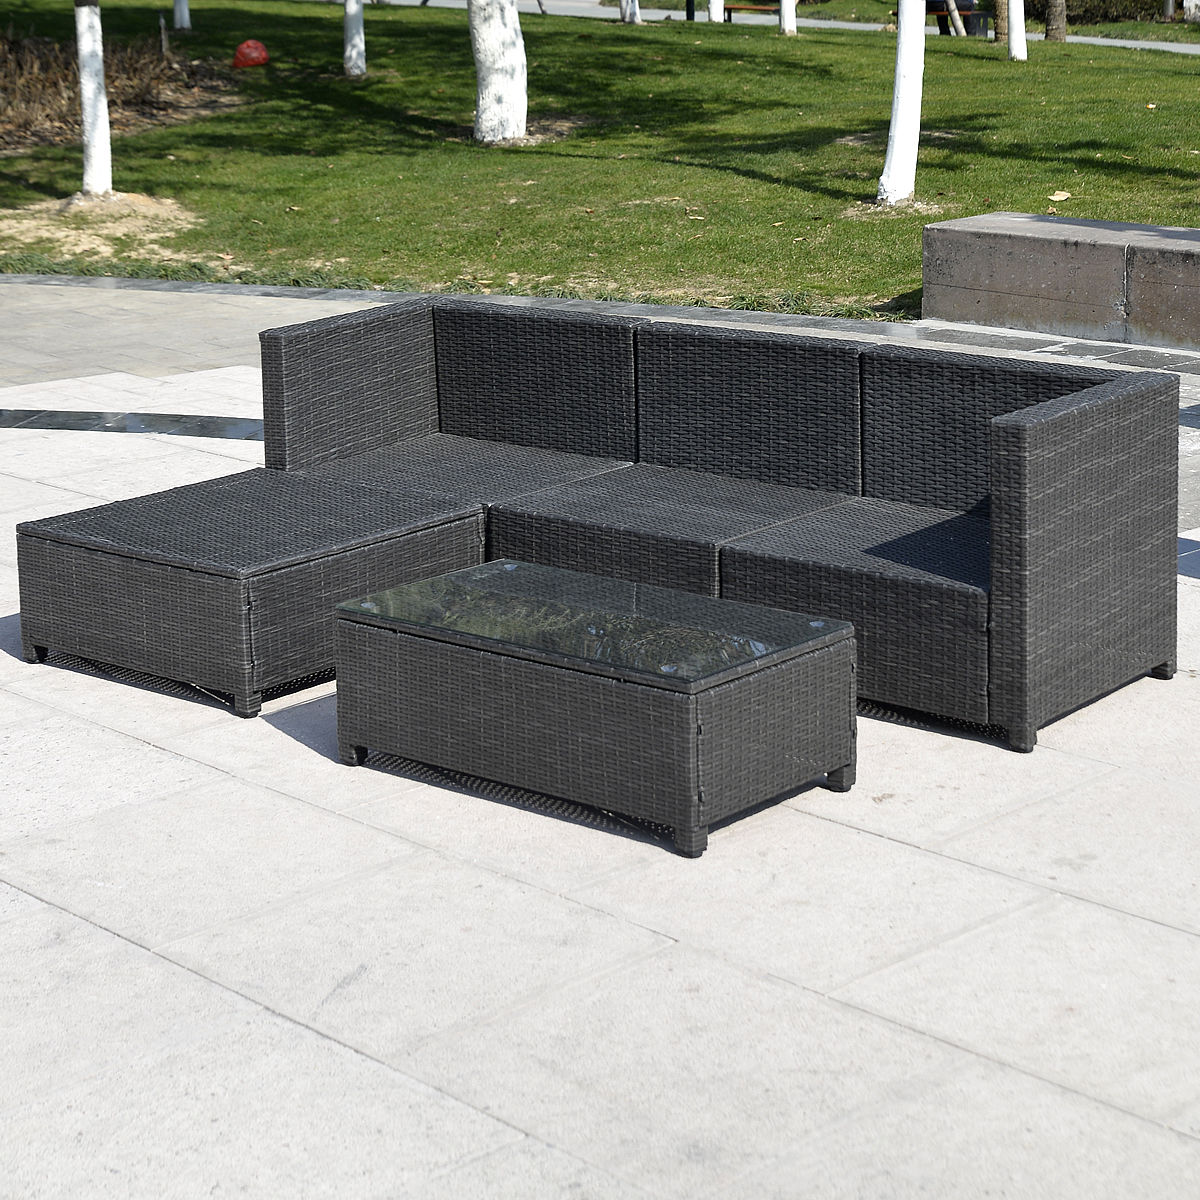 Outdoor Rattan Sofa Outdoor Patio Wicker Sofa Set 5pc Pe Rattan